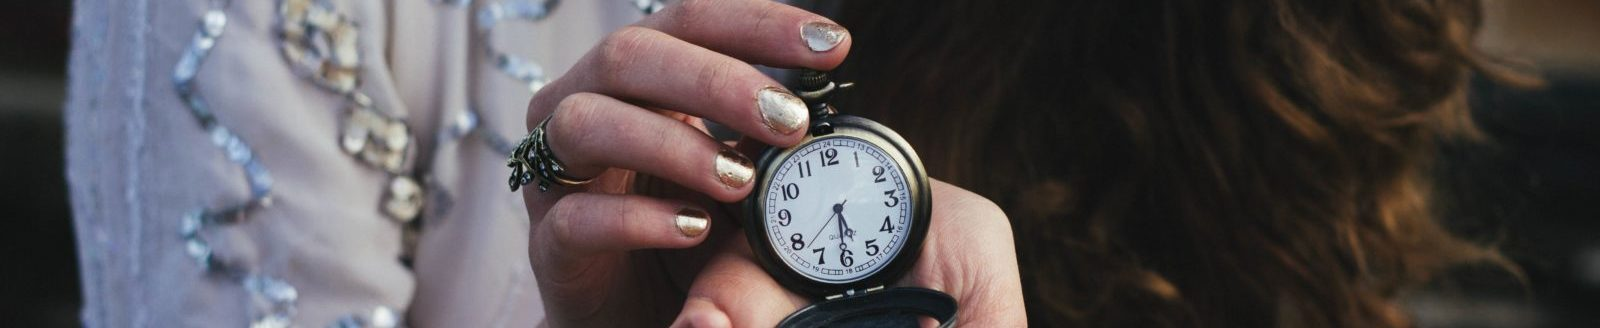 Time Famine: Because Time is What People Desire Even More Than Wealth